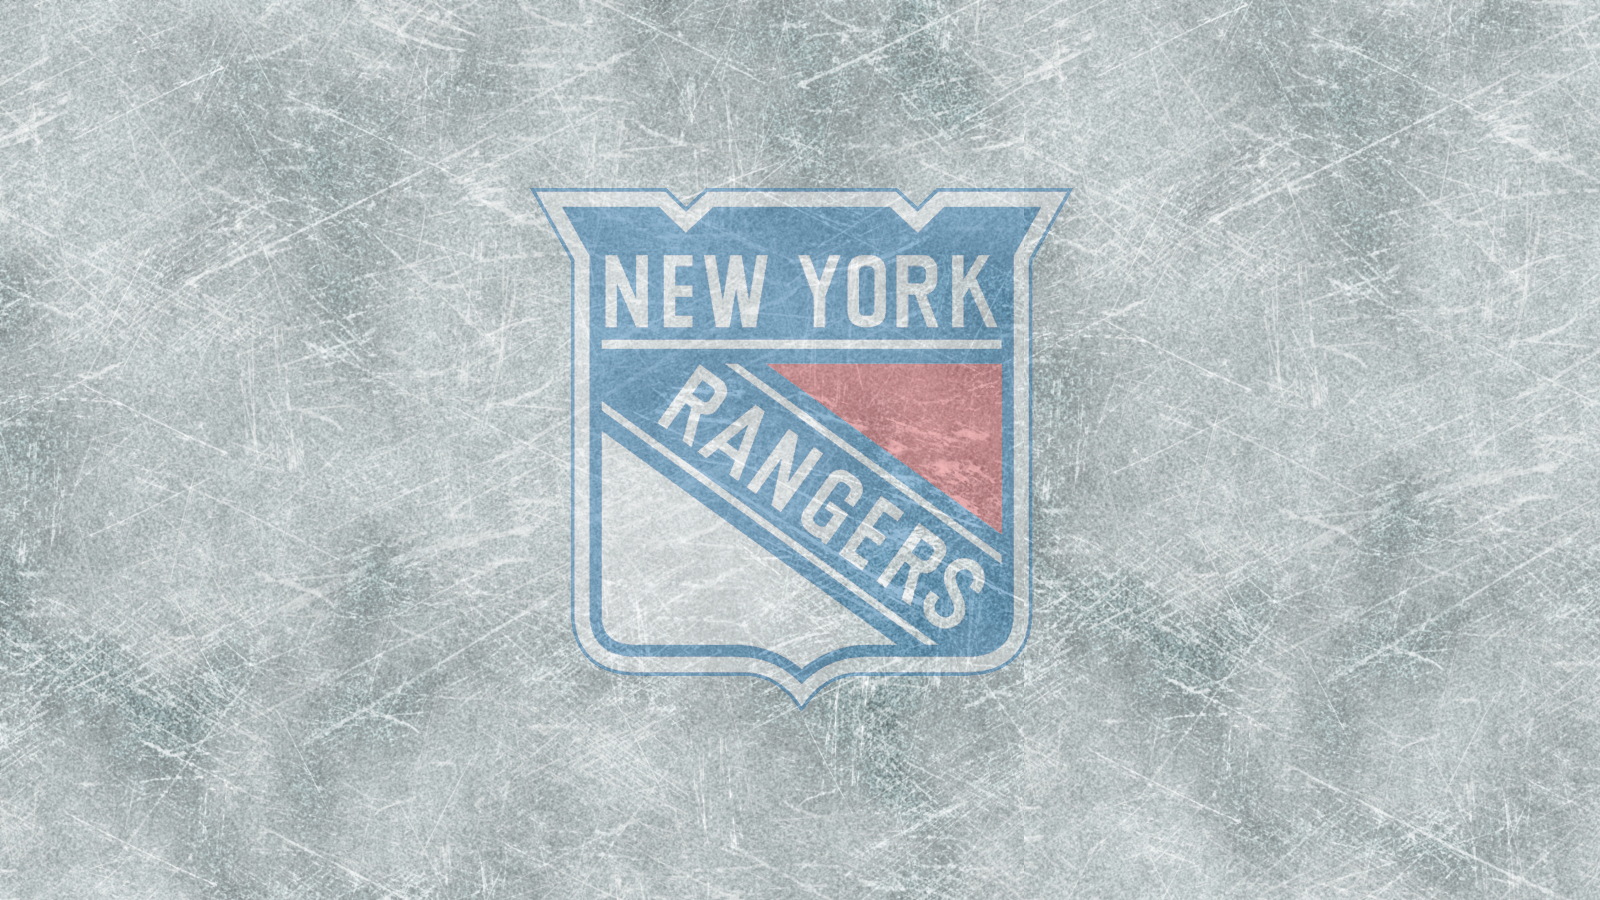 Free Download Wallpaper Other The New York Rangers Logo On Ice